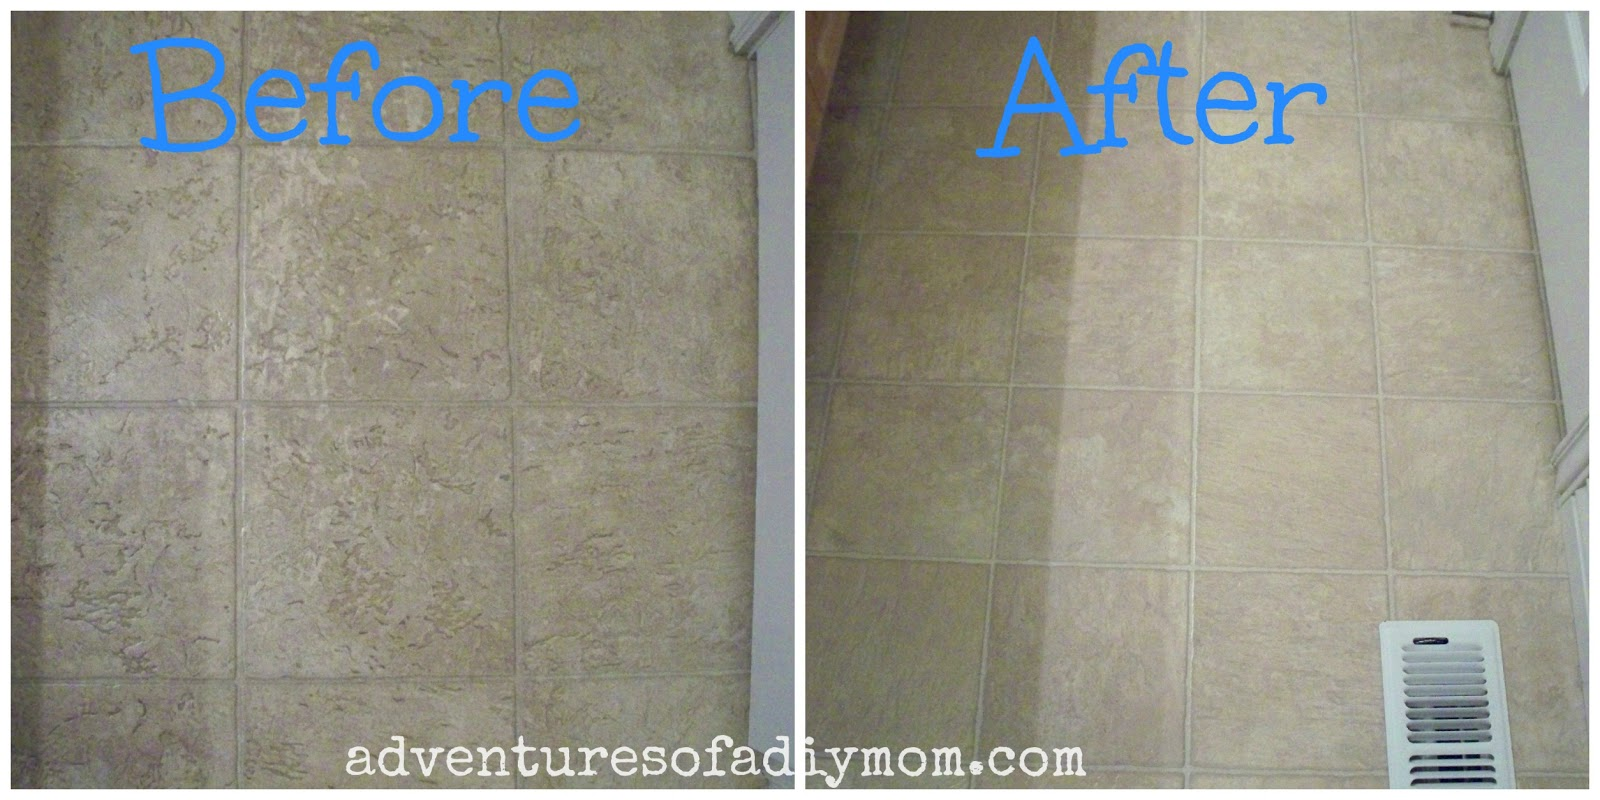 How To Remove Hairspray Residue From Floor Adventures Of A DIY Mom - How to clean bathroom wall tiles easily